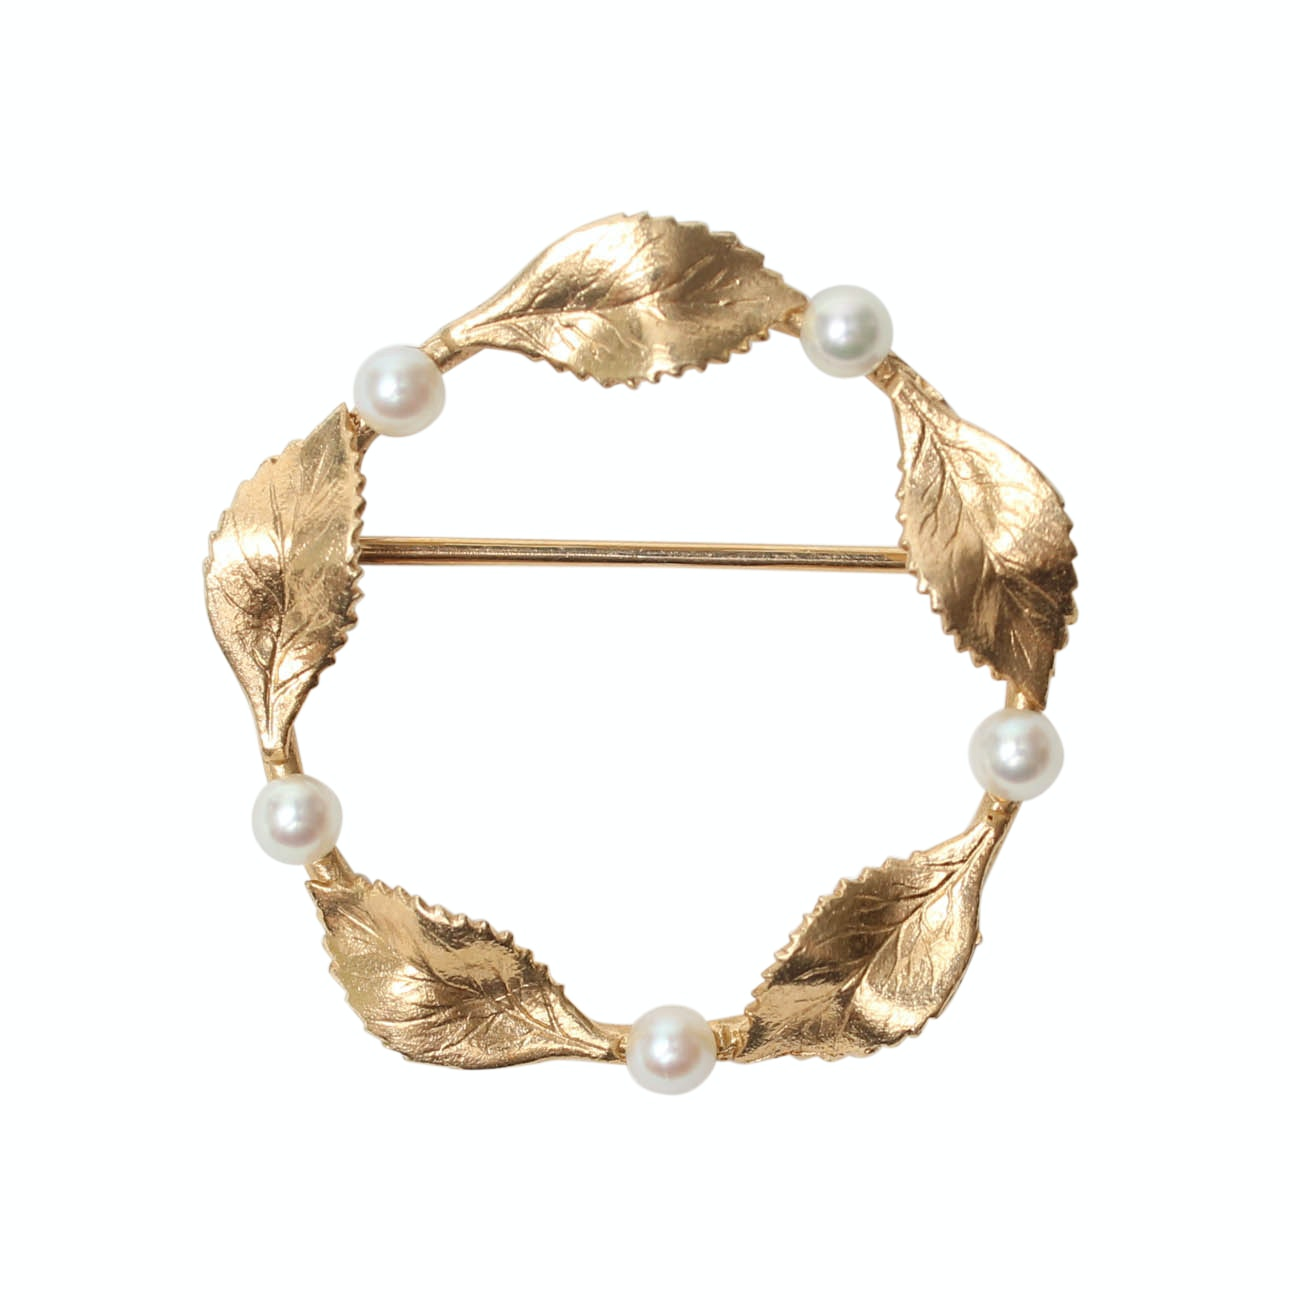 14K Yellow Gold 1950s Pearl Wreath Brooch